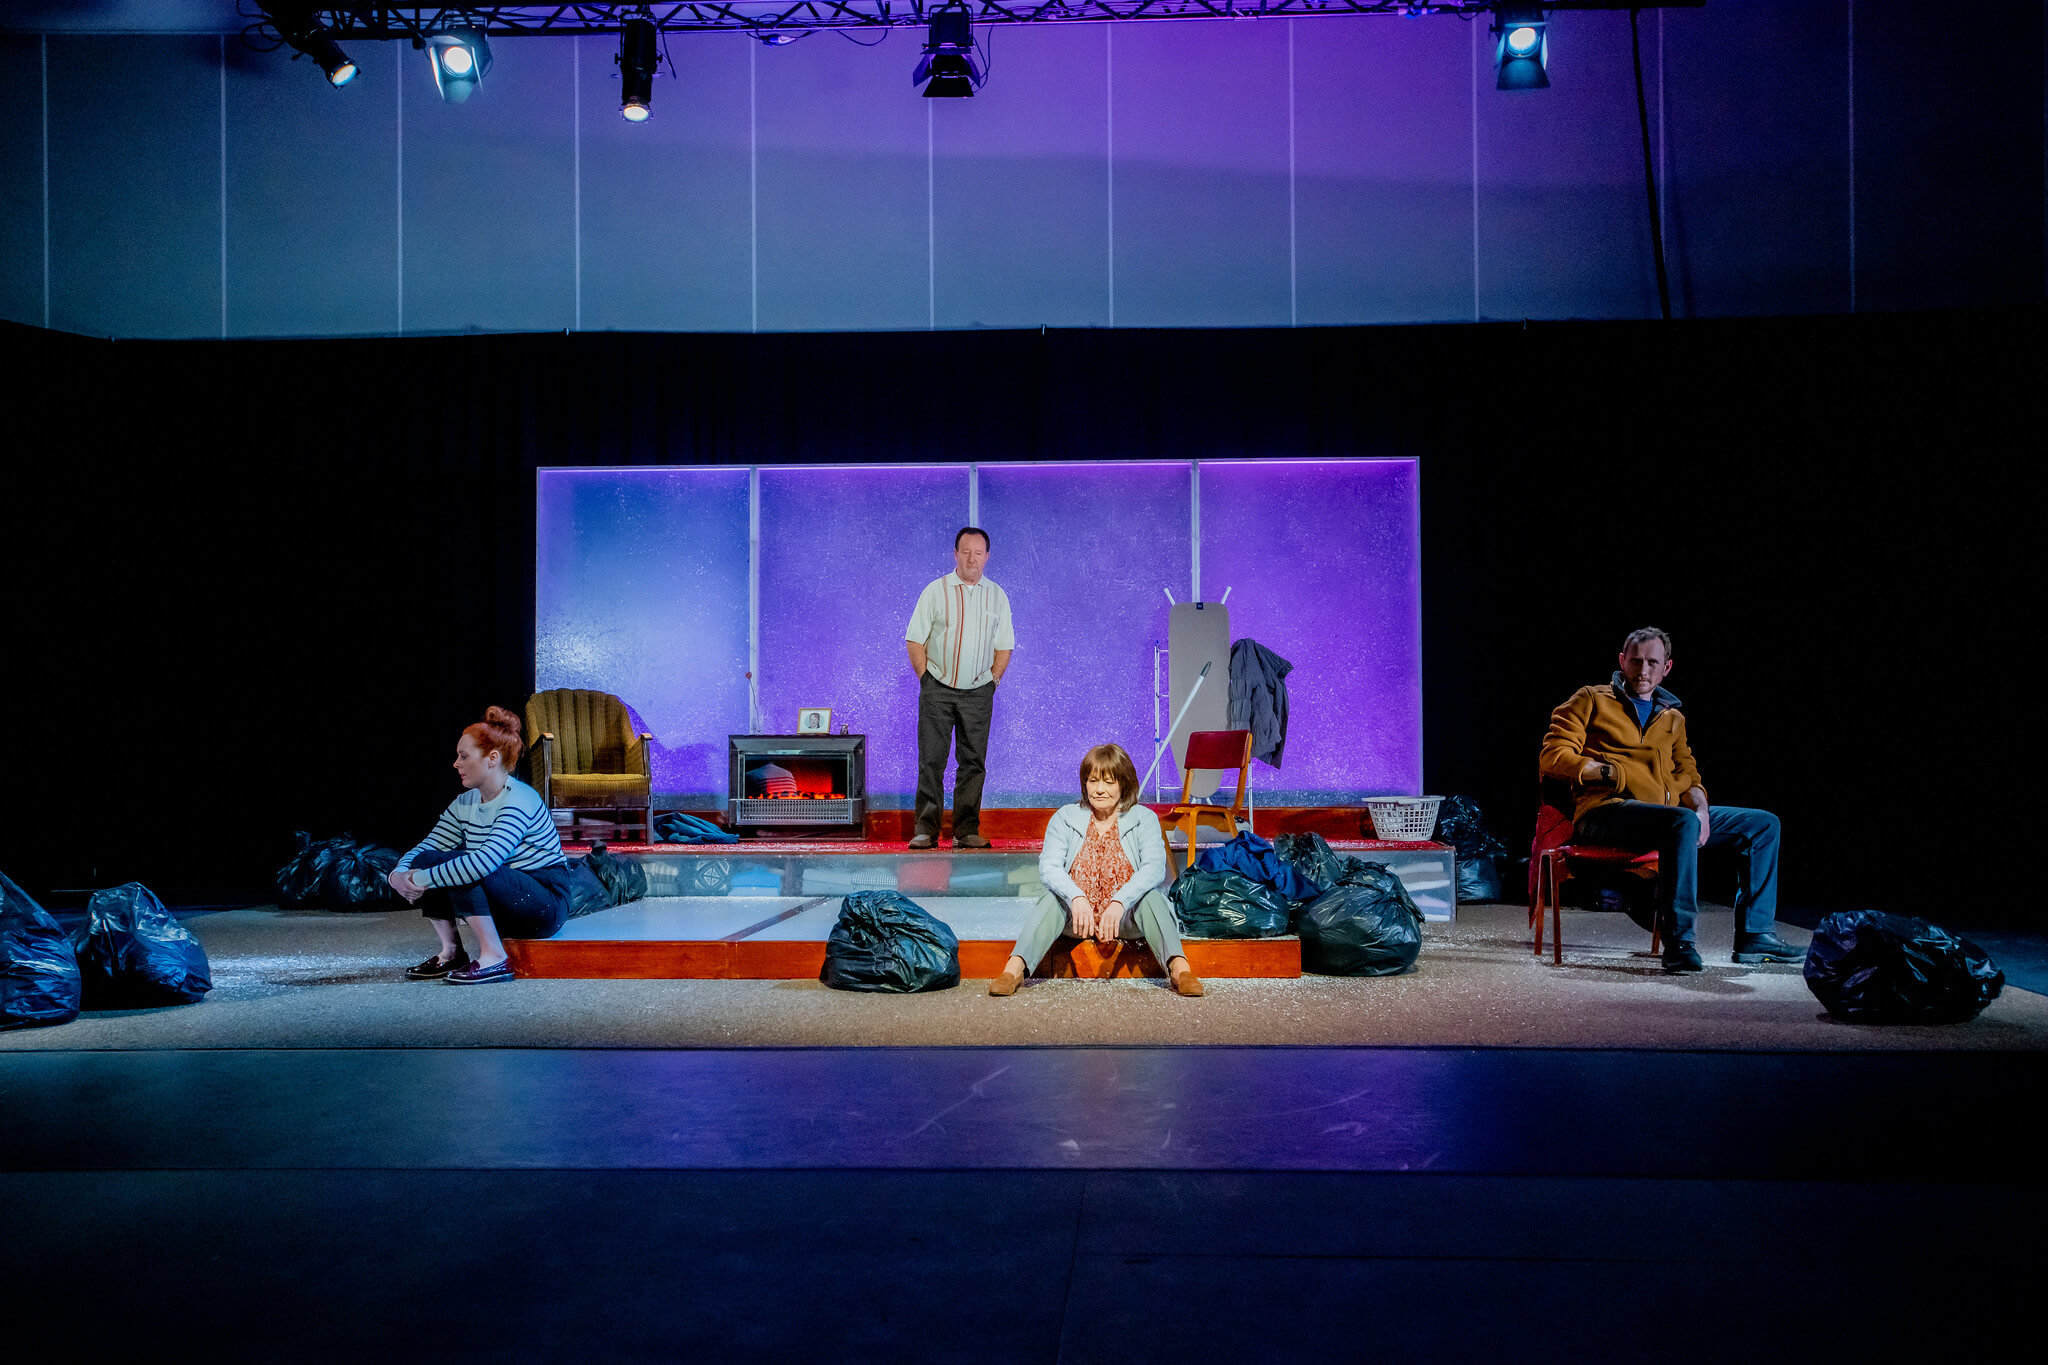 Production shot of the full set with the cast spaced out within it